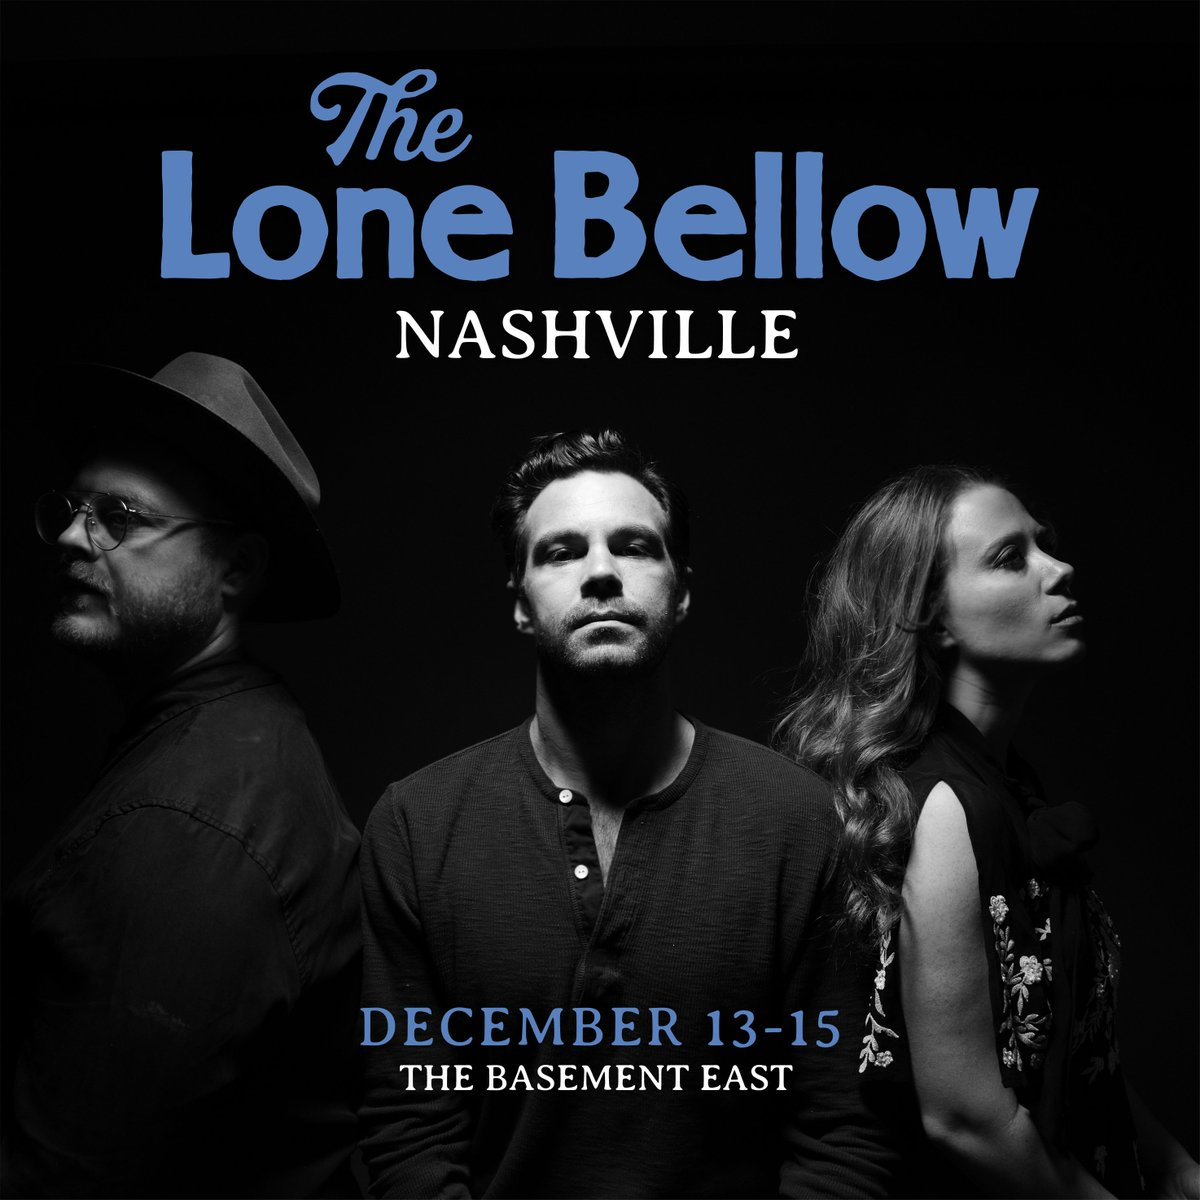 TONIGHT! is the last night of @TheLoneBellow residency!  There are a handful of tickets left! http://bit.ly/TLB1215